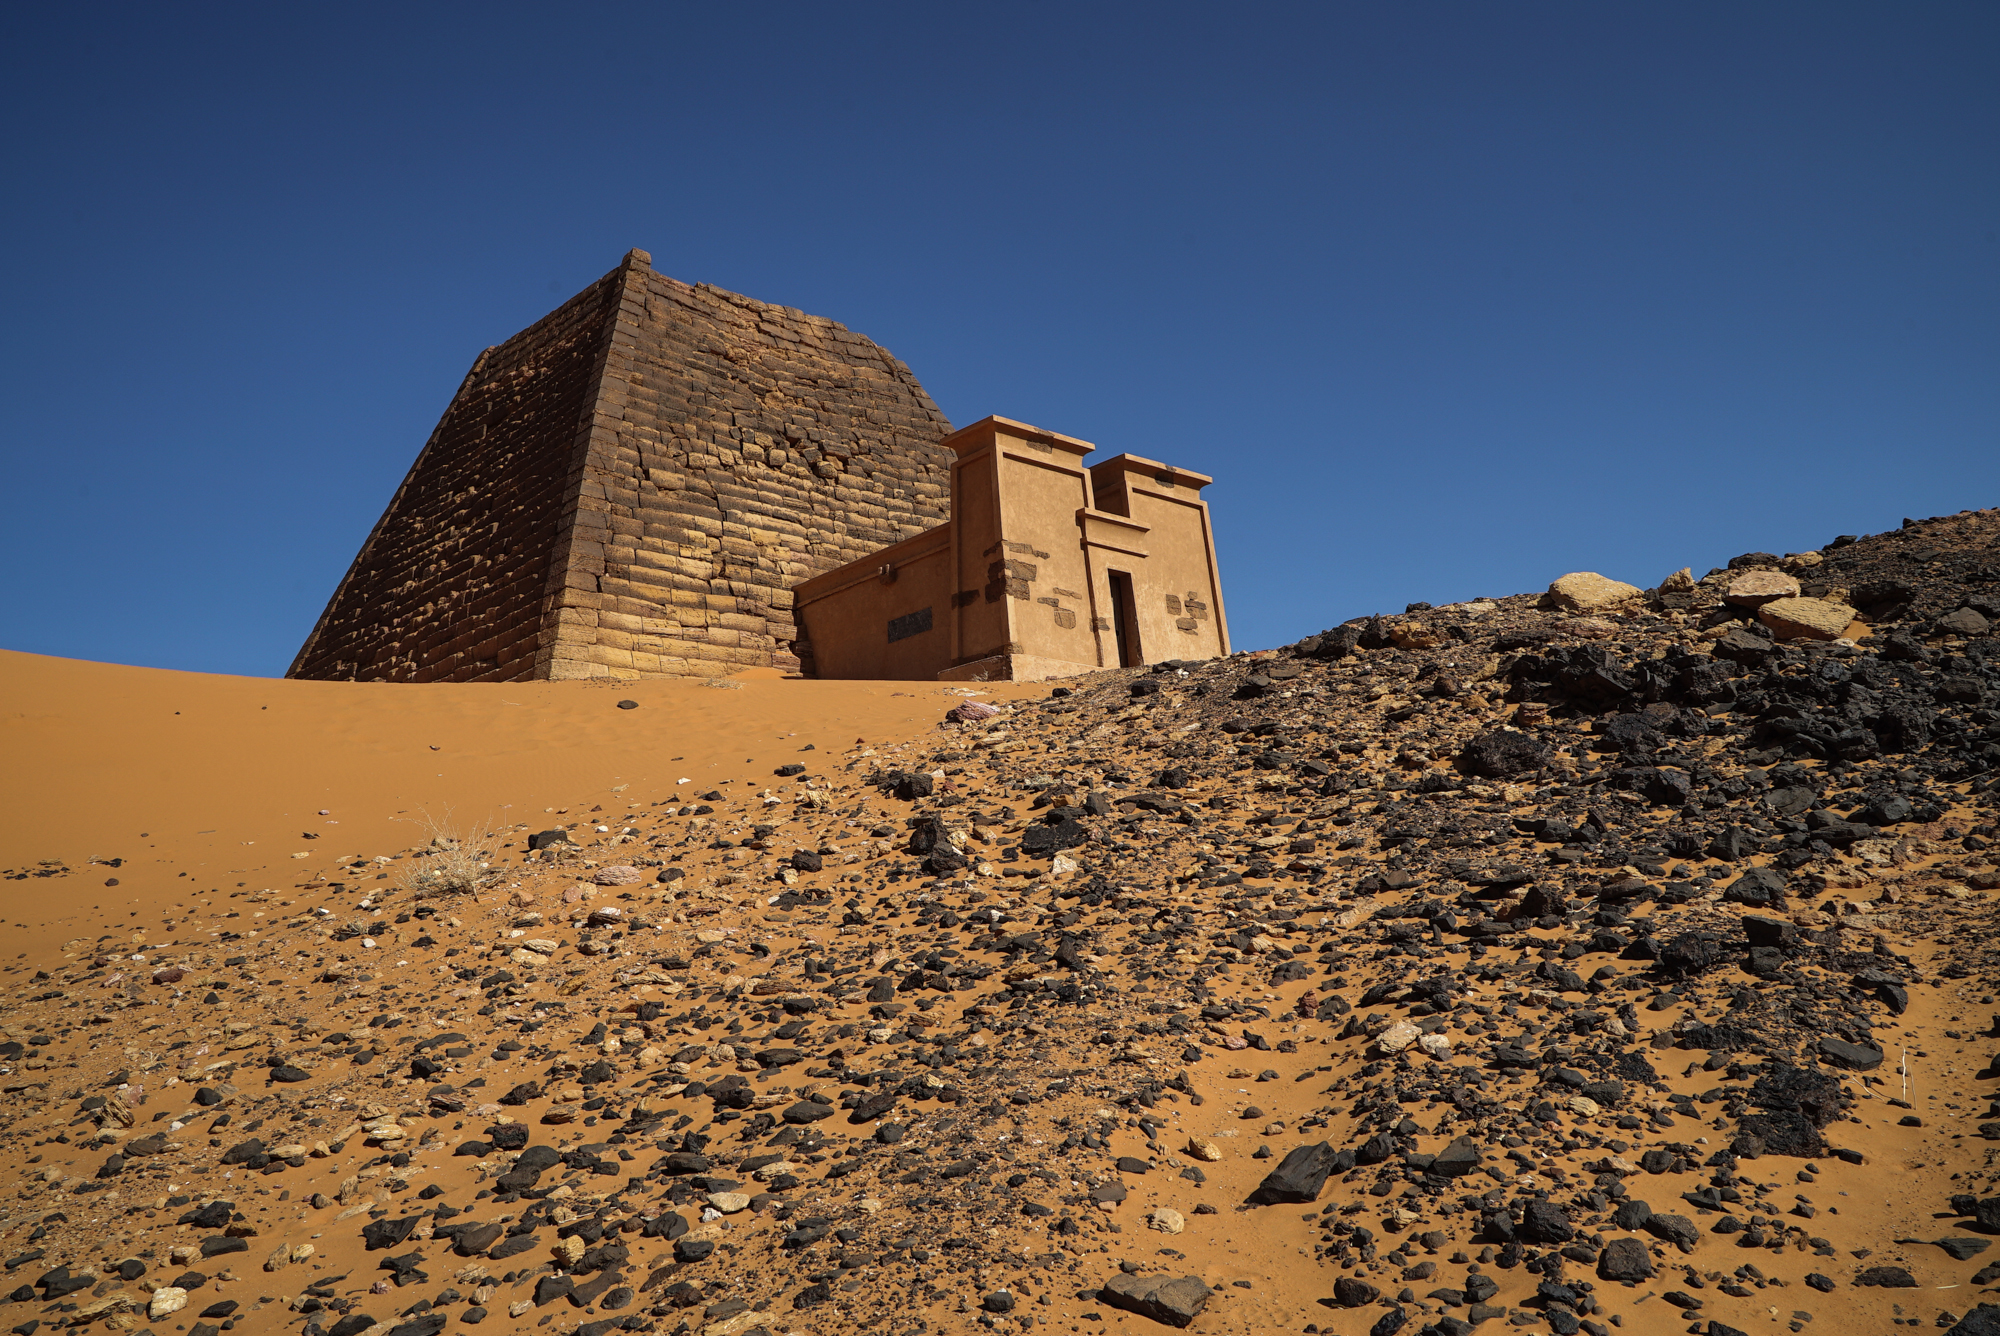 the pyramids of sudan The first series of nubian pyramids were built at the site of el-kurru and included the tombs of king kashta and his son piye  the modern capital of sudan.